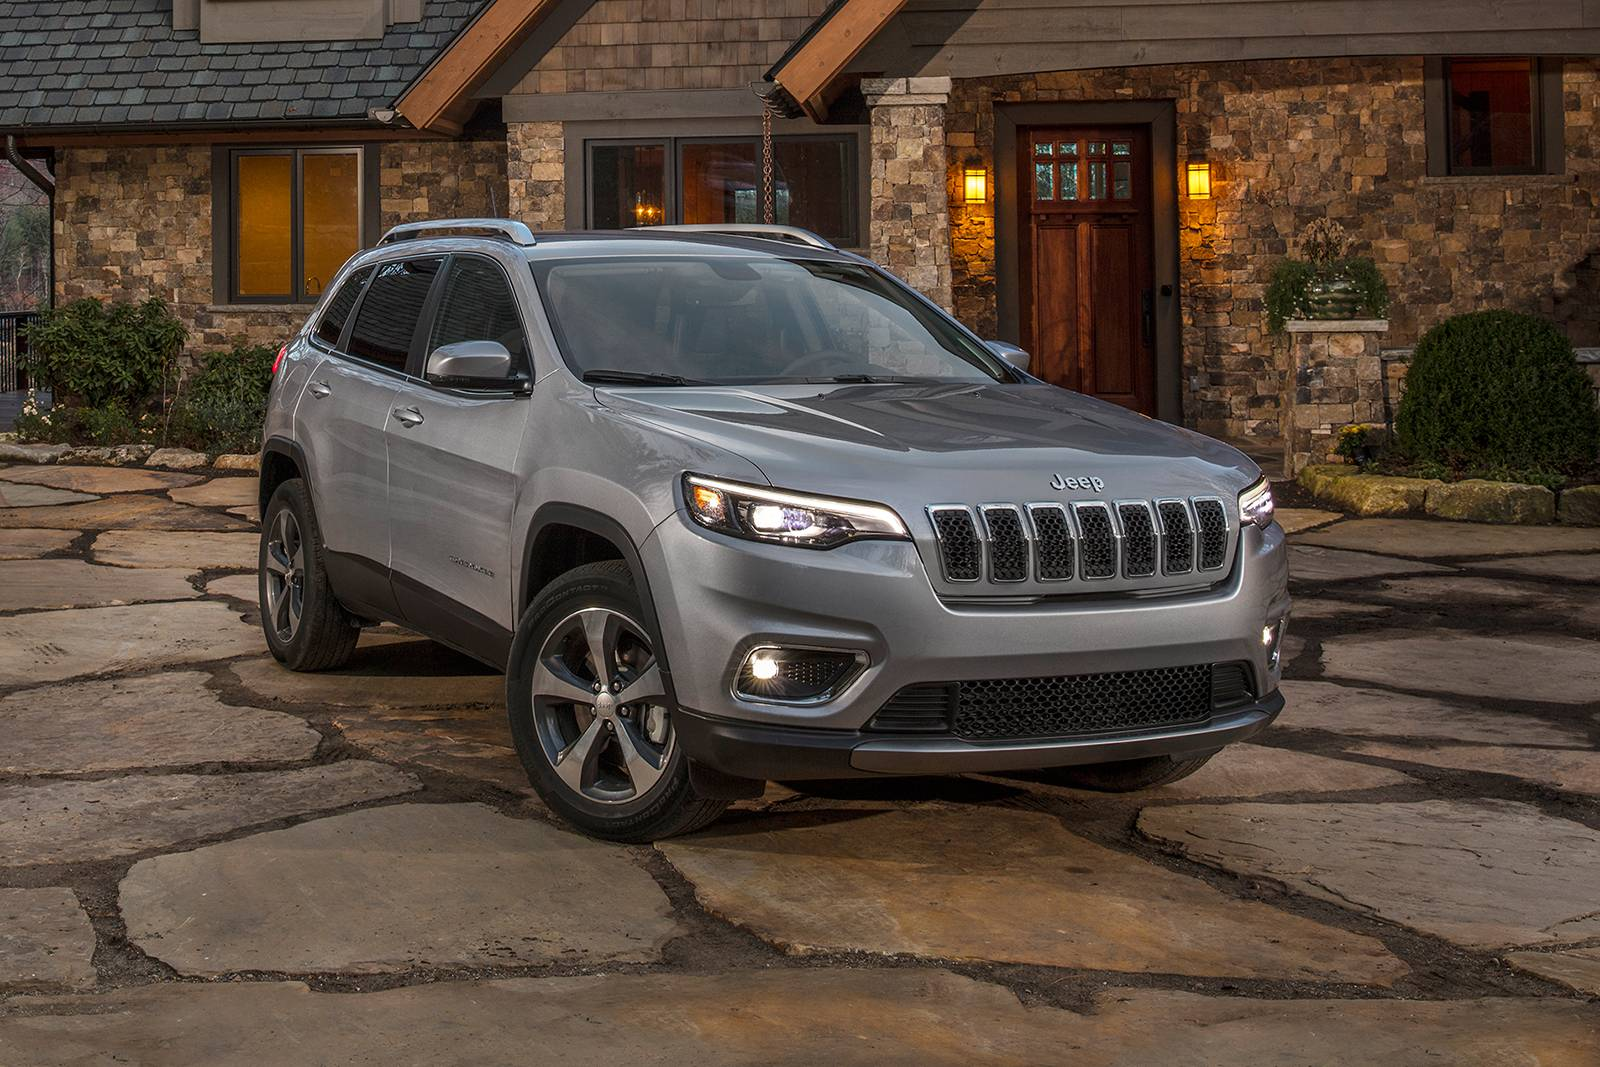 2019 jeep cherokee 4dr suv limited fq oem 1 1600